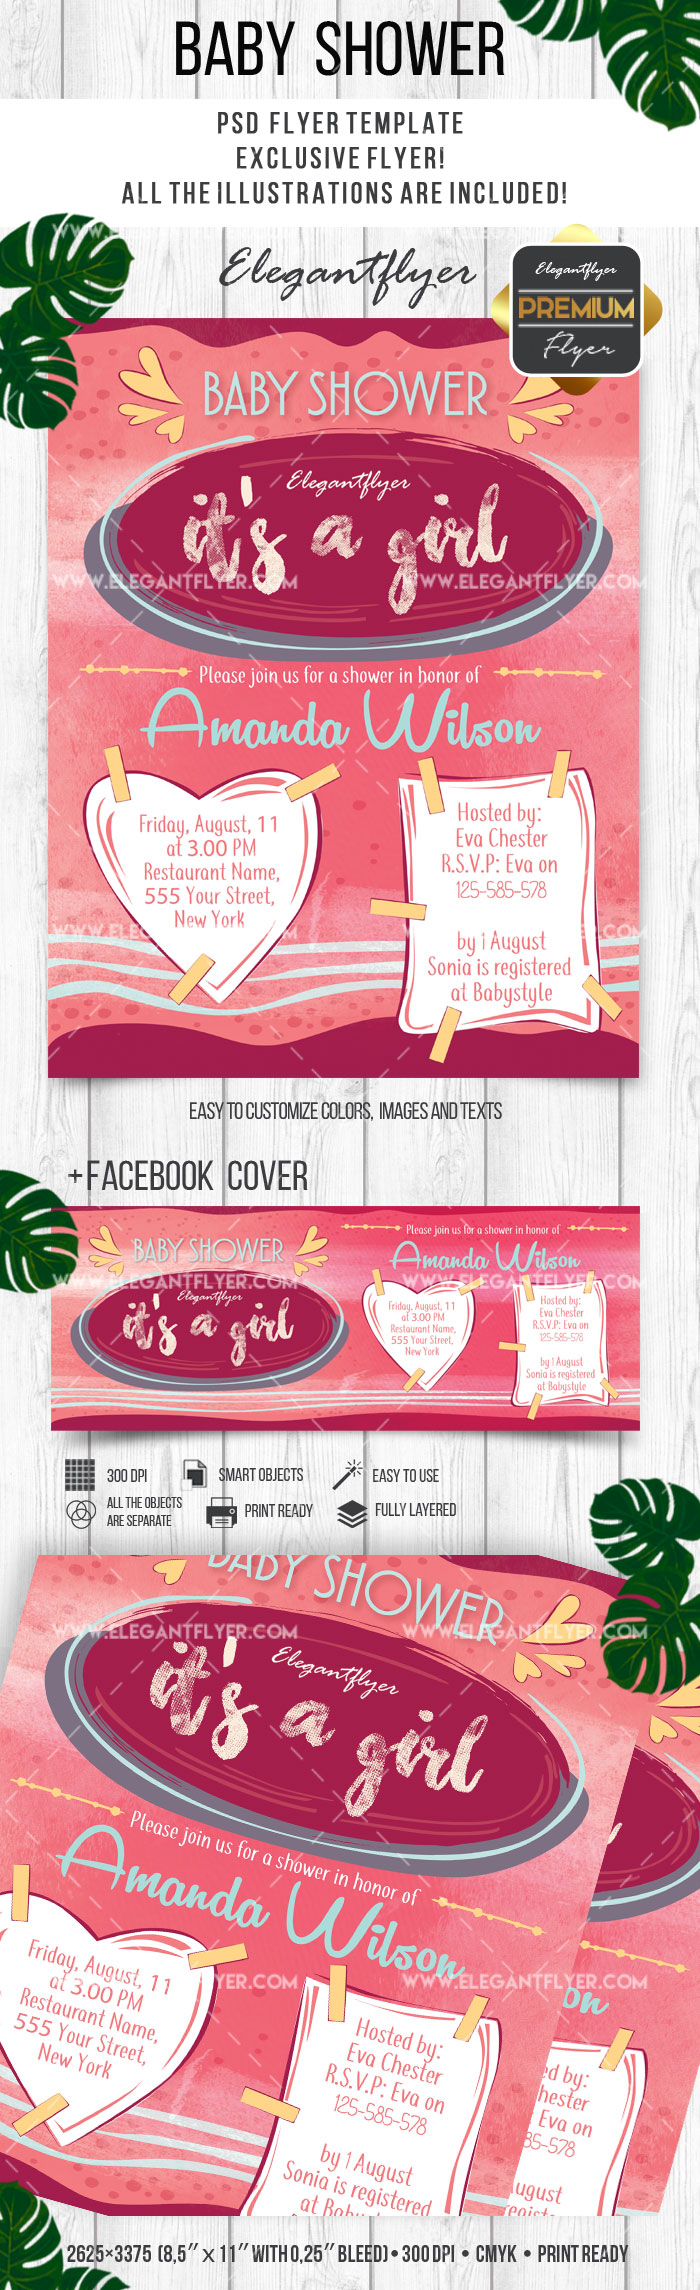 Baby Shower Invitations for Girls PSD Flyer